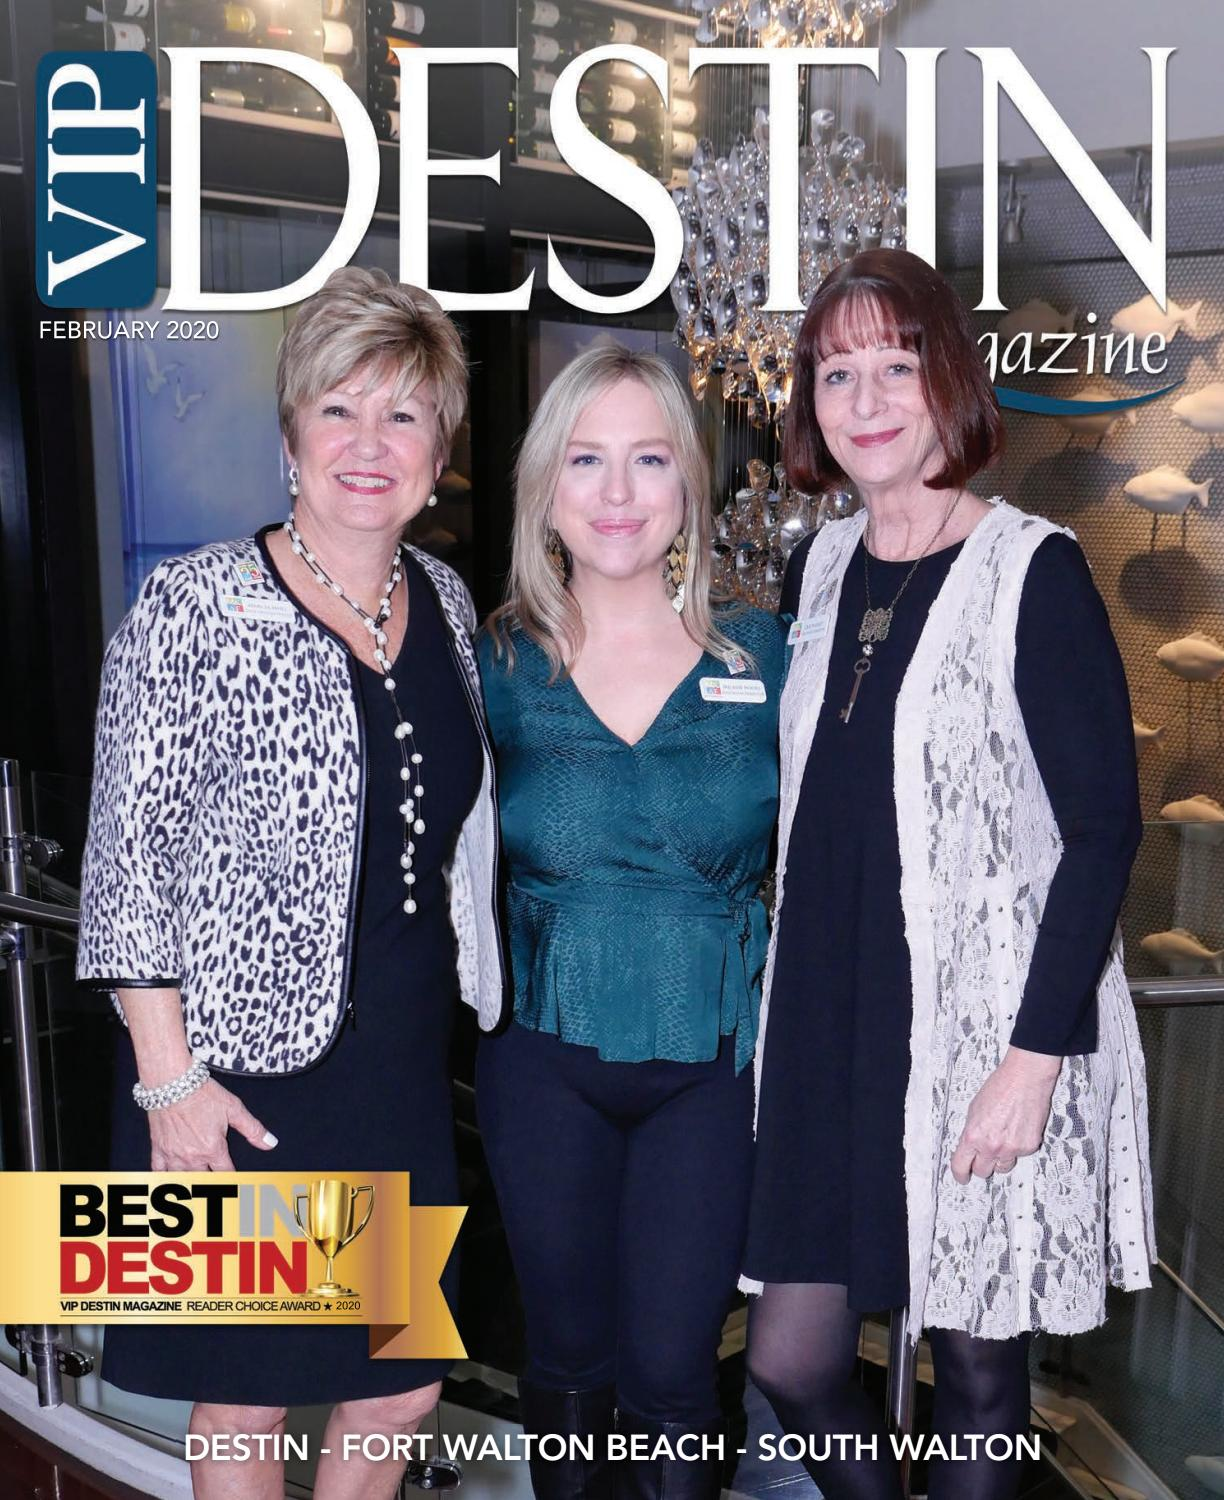 Destin Christmas Brunches 2020 VIP Destin Magazine, February 2020 by VIP Destin, LLC   issuu